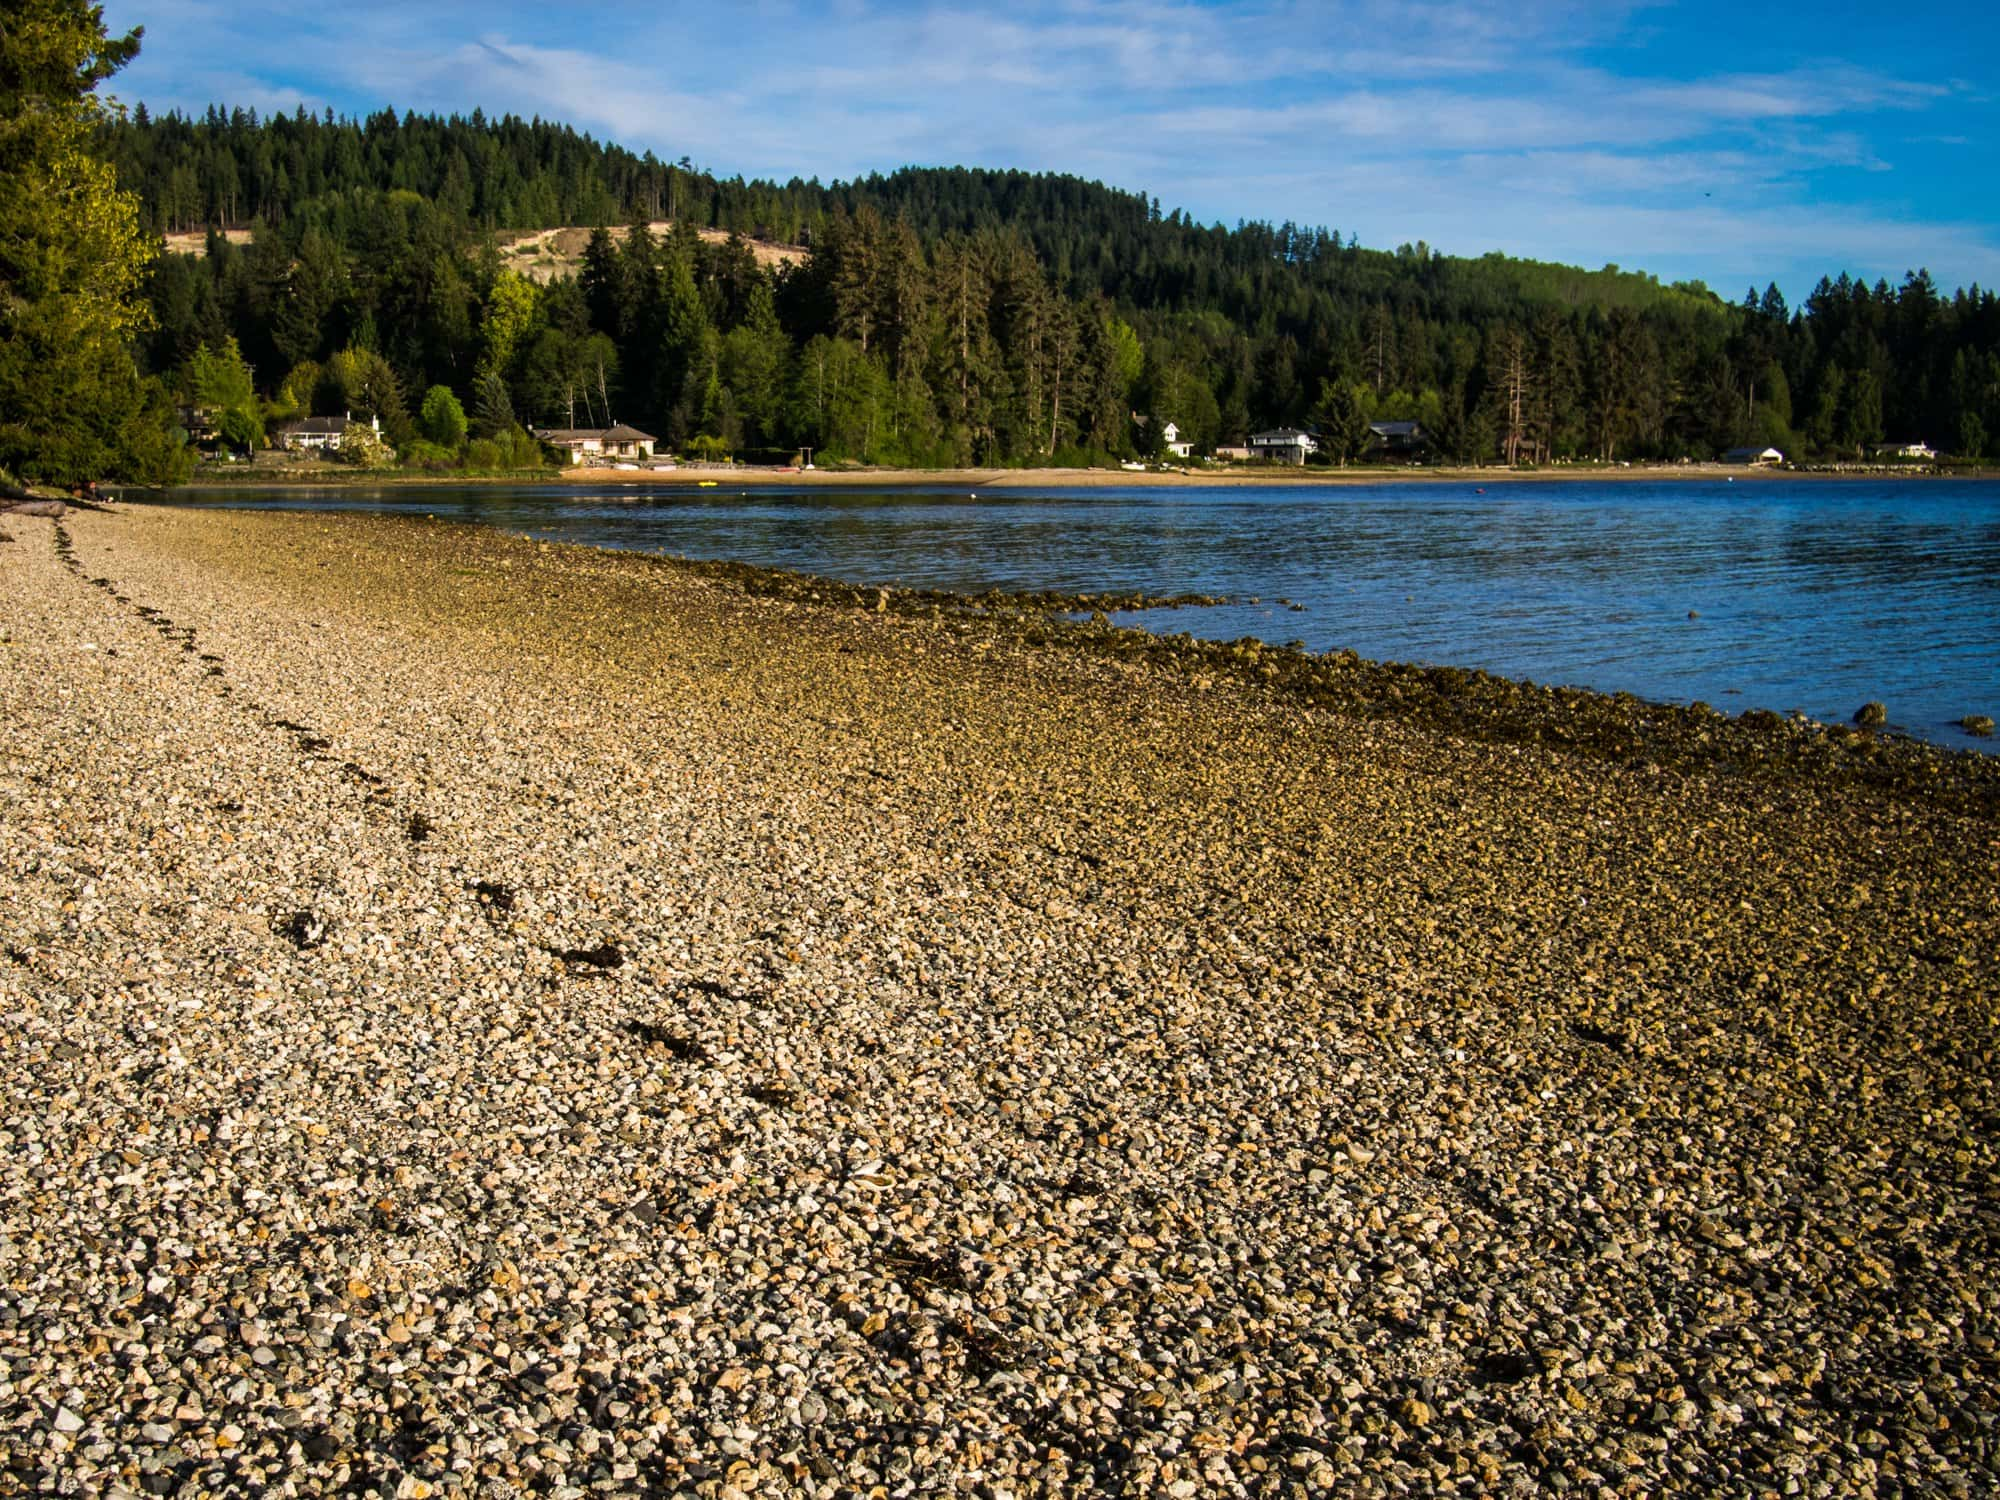 The golden beach at Porpoise Bay Provincial Park.